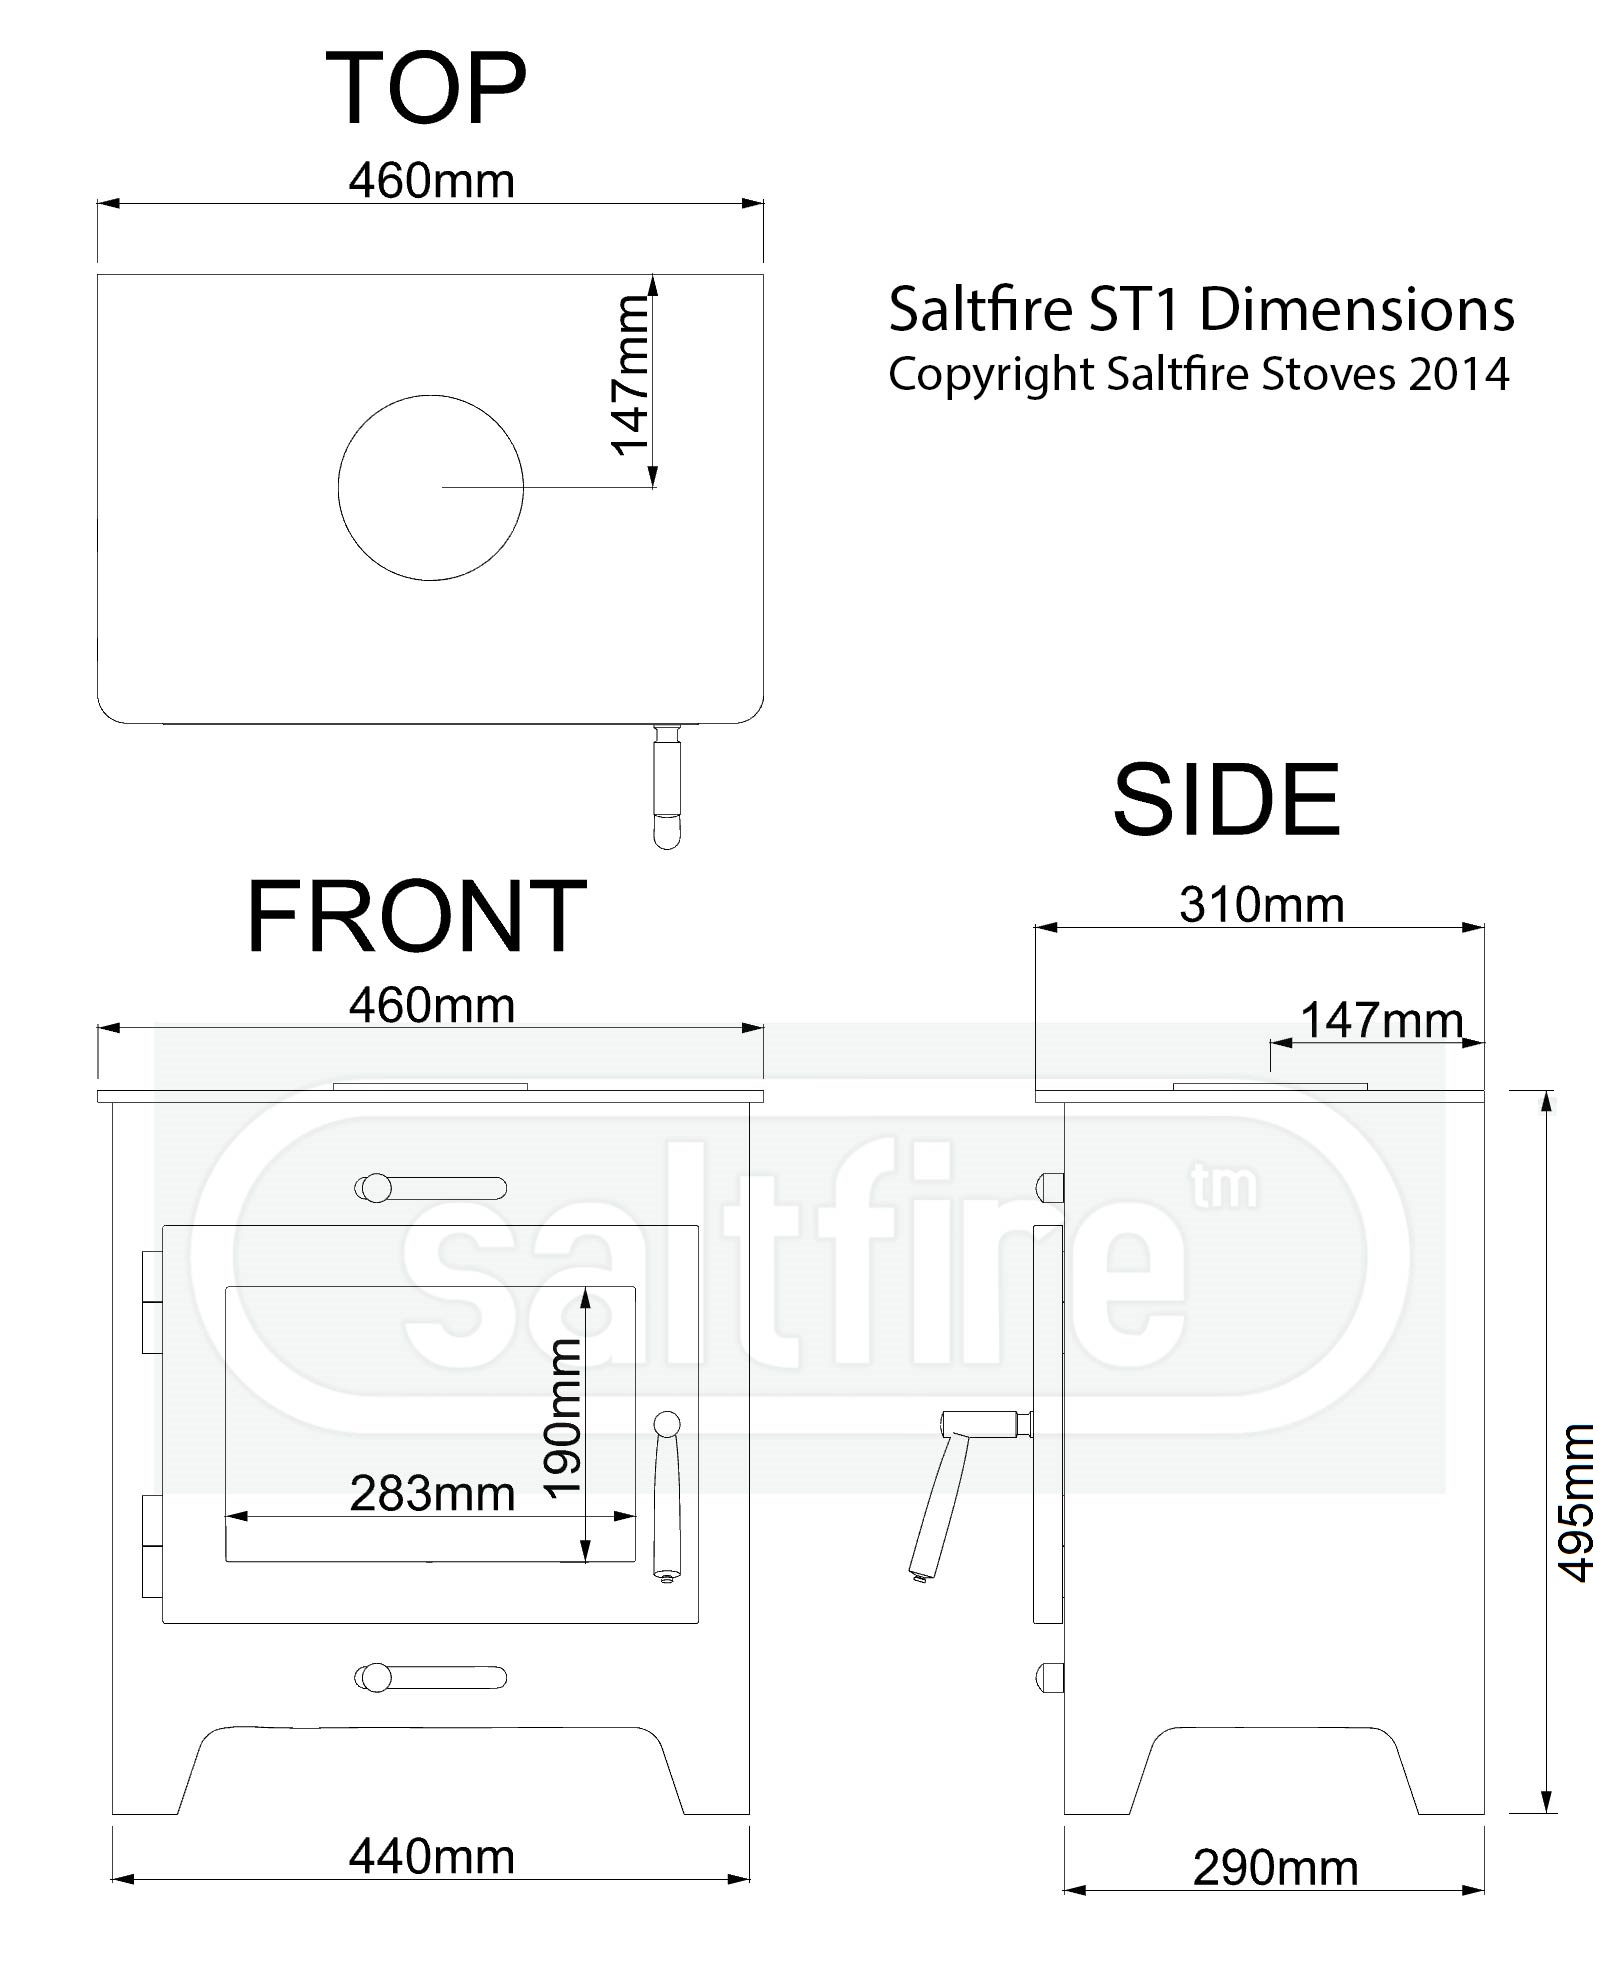 saltfire-st1-stove-dimensions.jpg